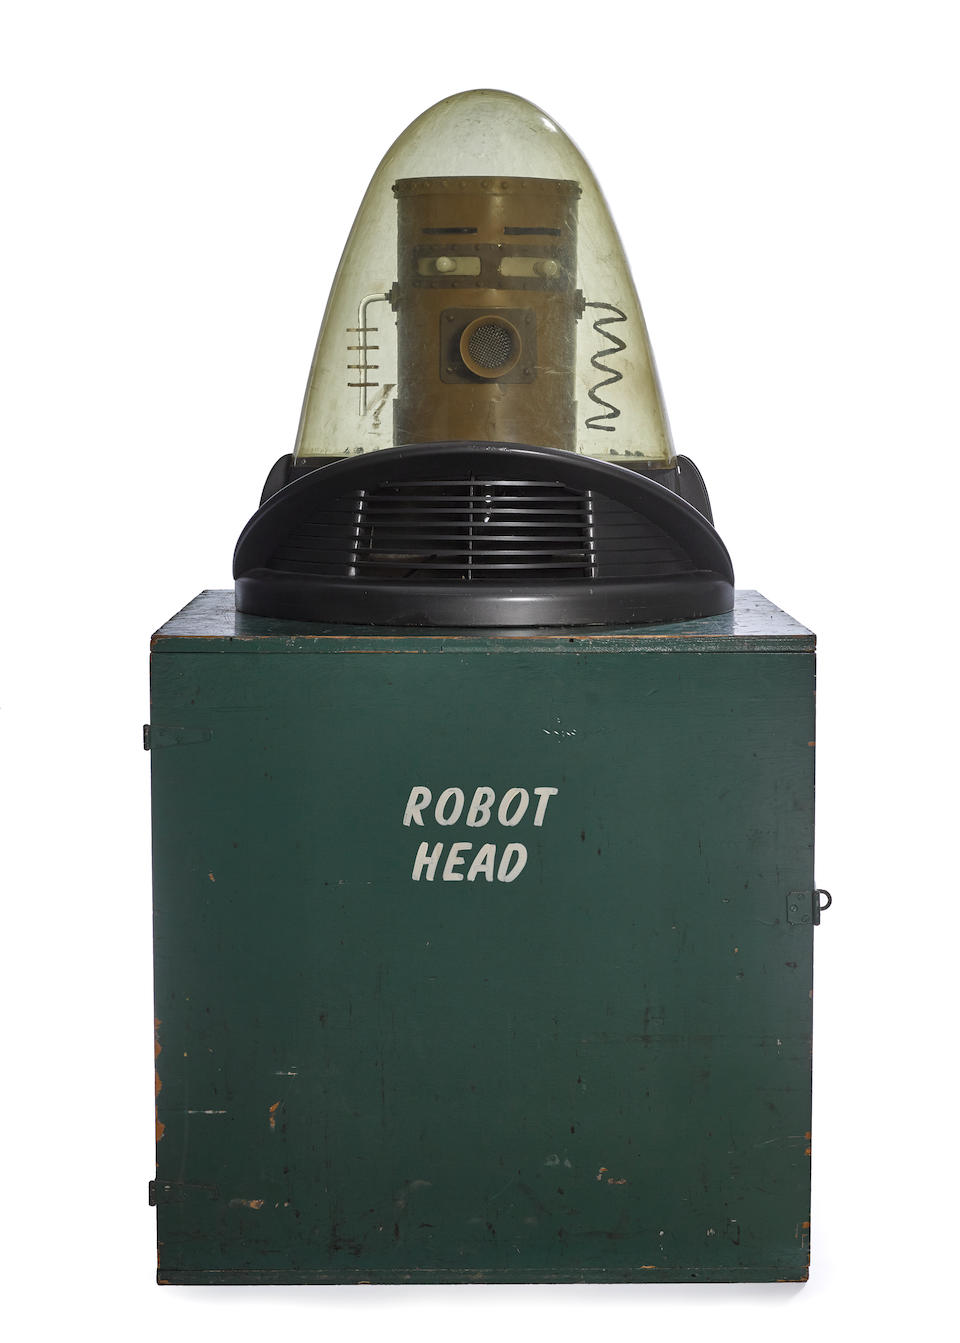 The iconic original Robby the Robot suit and Jeep from Forbidden Planet